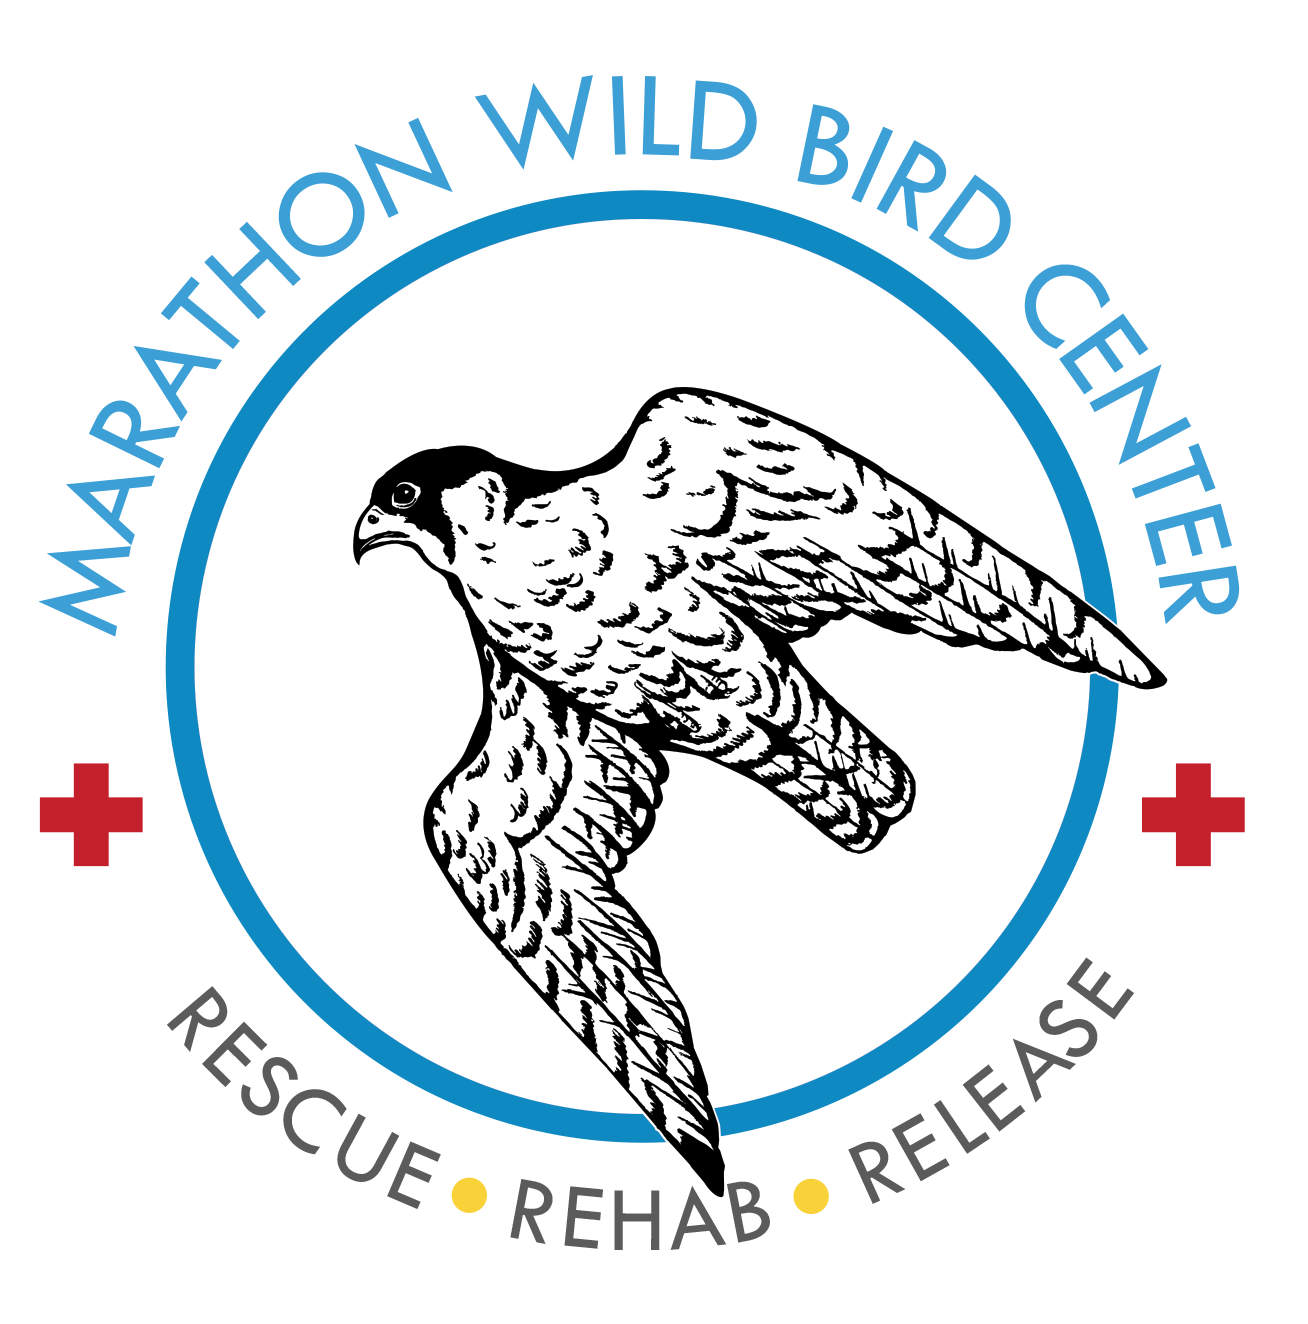 Marathon Wild Bird Center